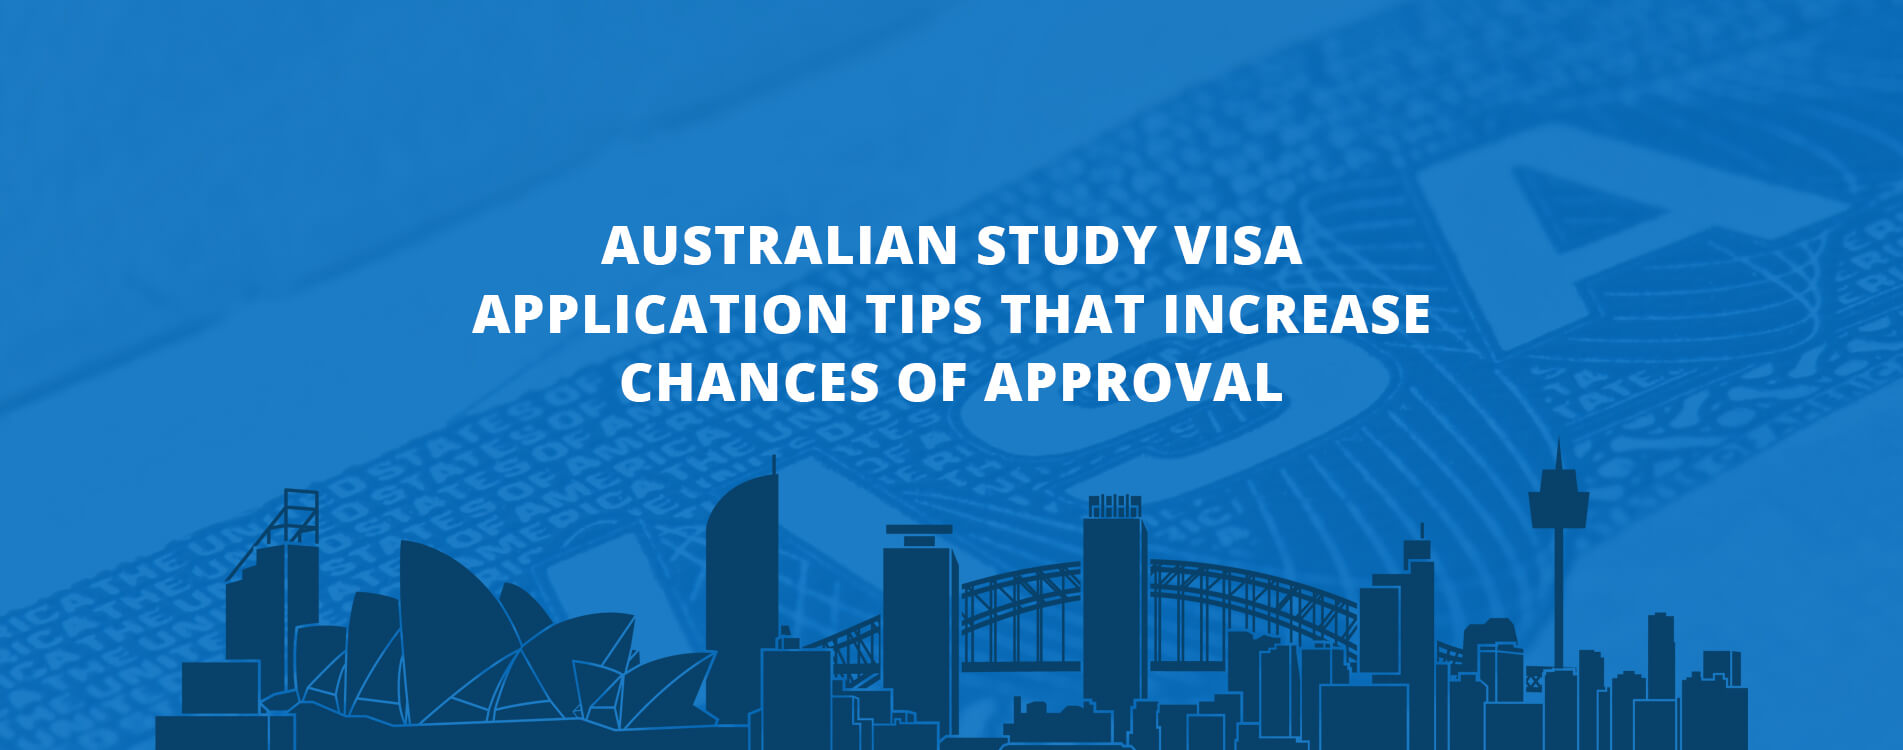 Australian Study Visa Application Tips that Increase Chances of Approval